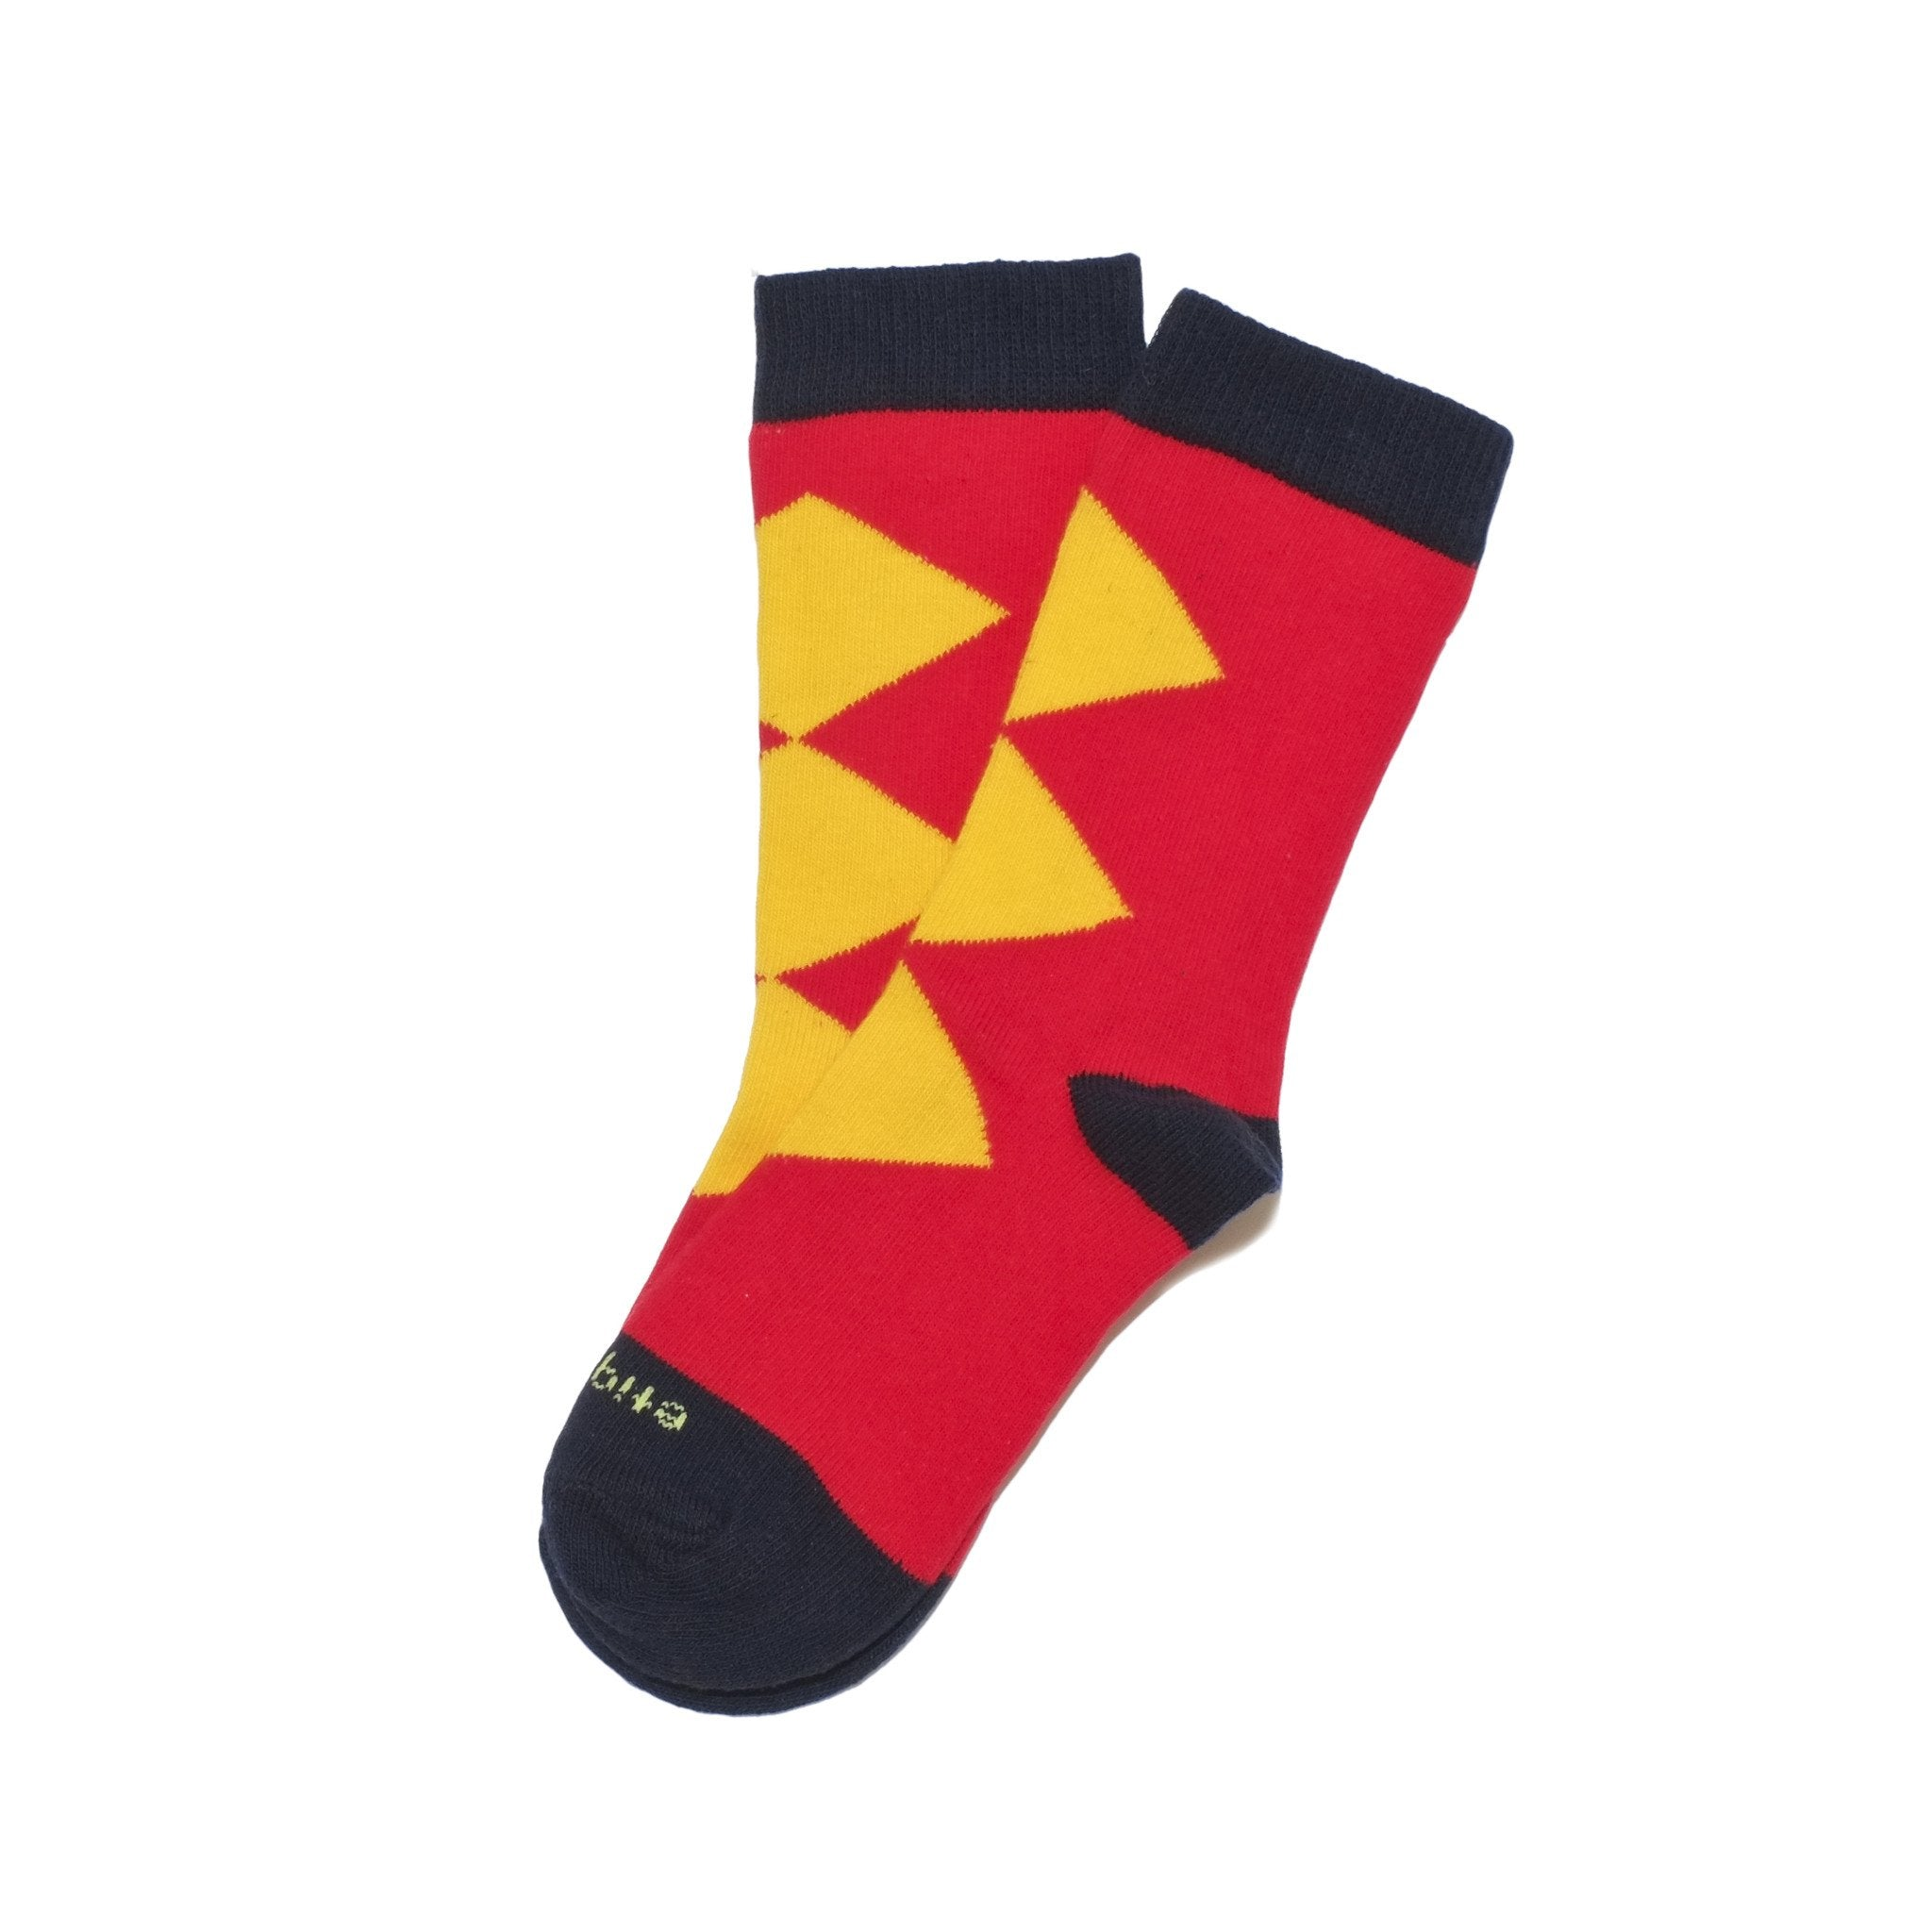 Kids Socks - Super Heroes - Fire Red⎪Etiquette Clothiers